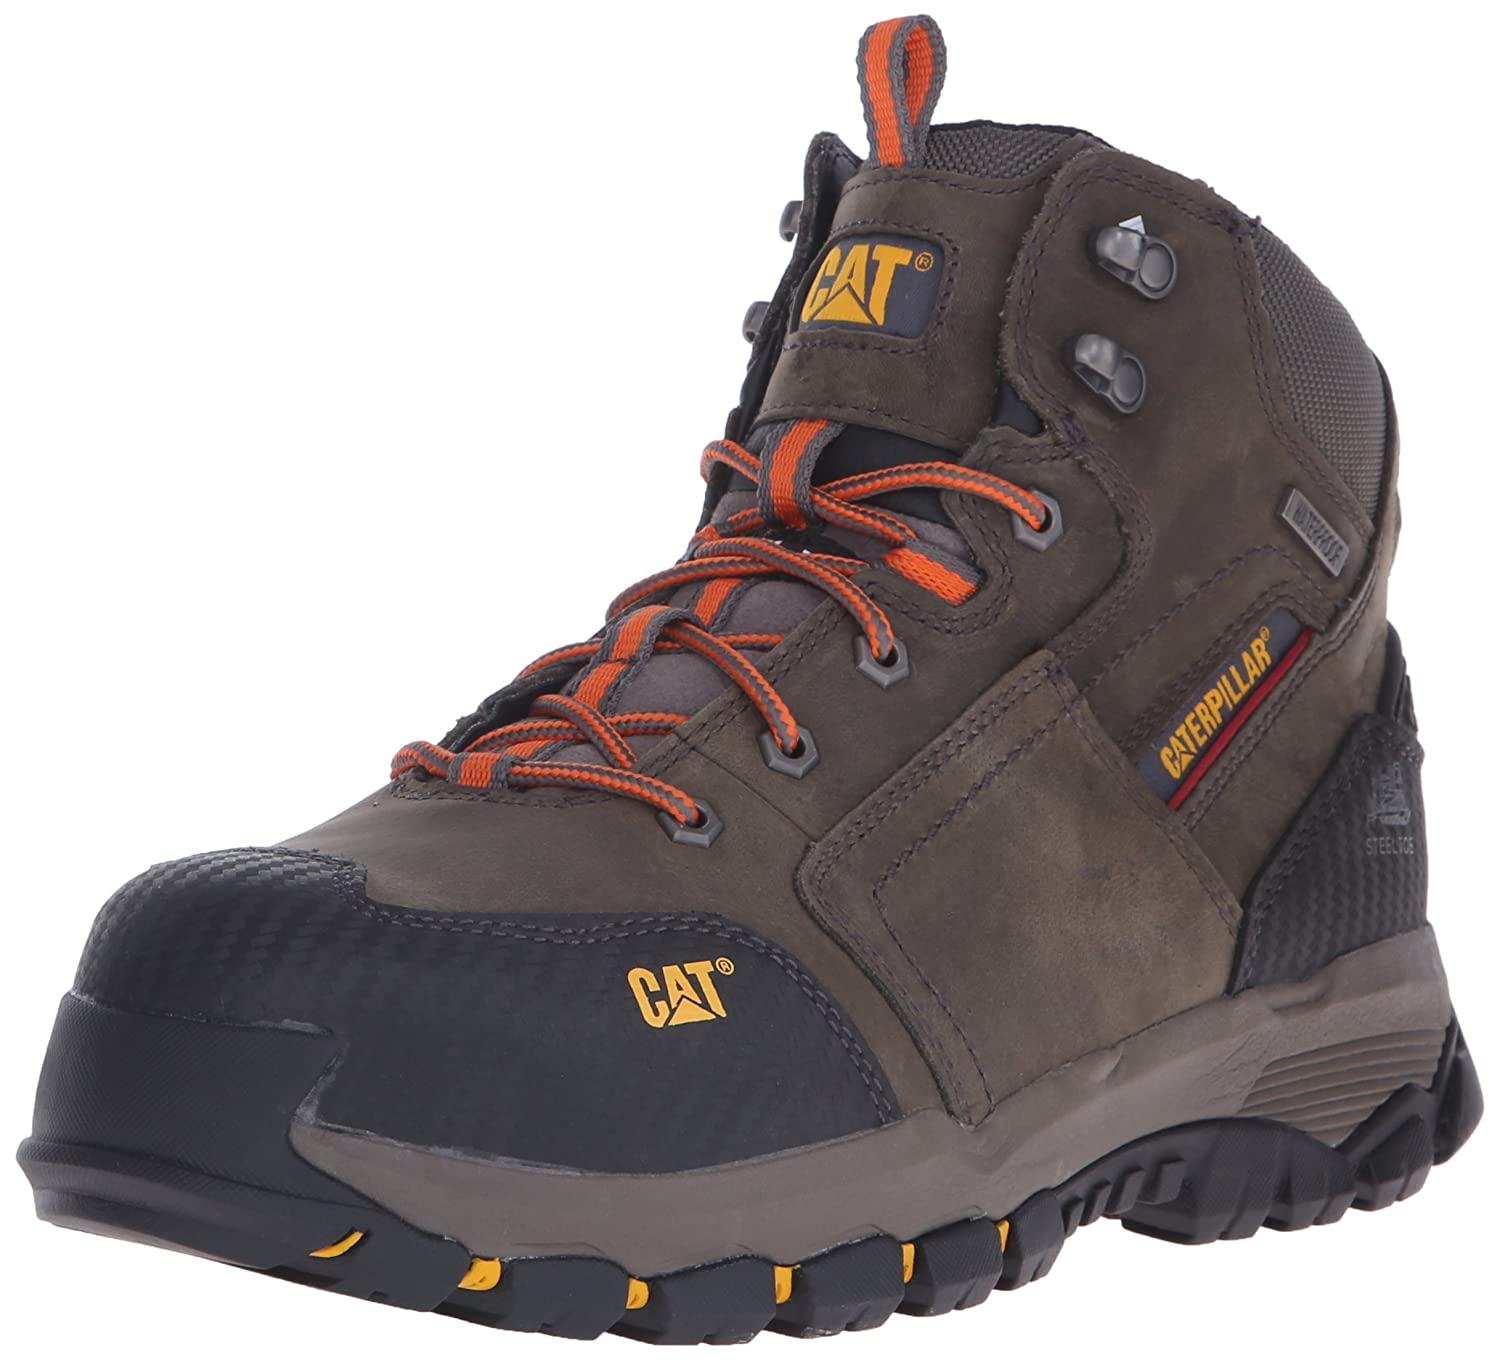 Caterpillar Men 's Navigator Mid防水作業6インチwaterpoofeel Toe Dark Gull Grey 10 C/D US  B014LWPLPQ